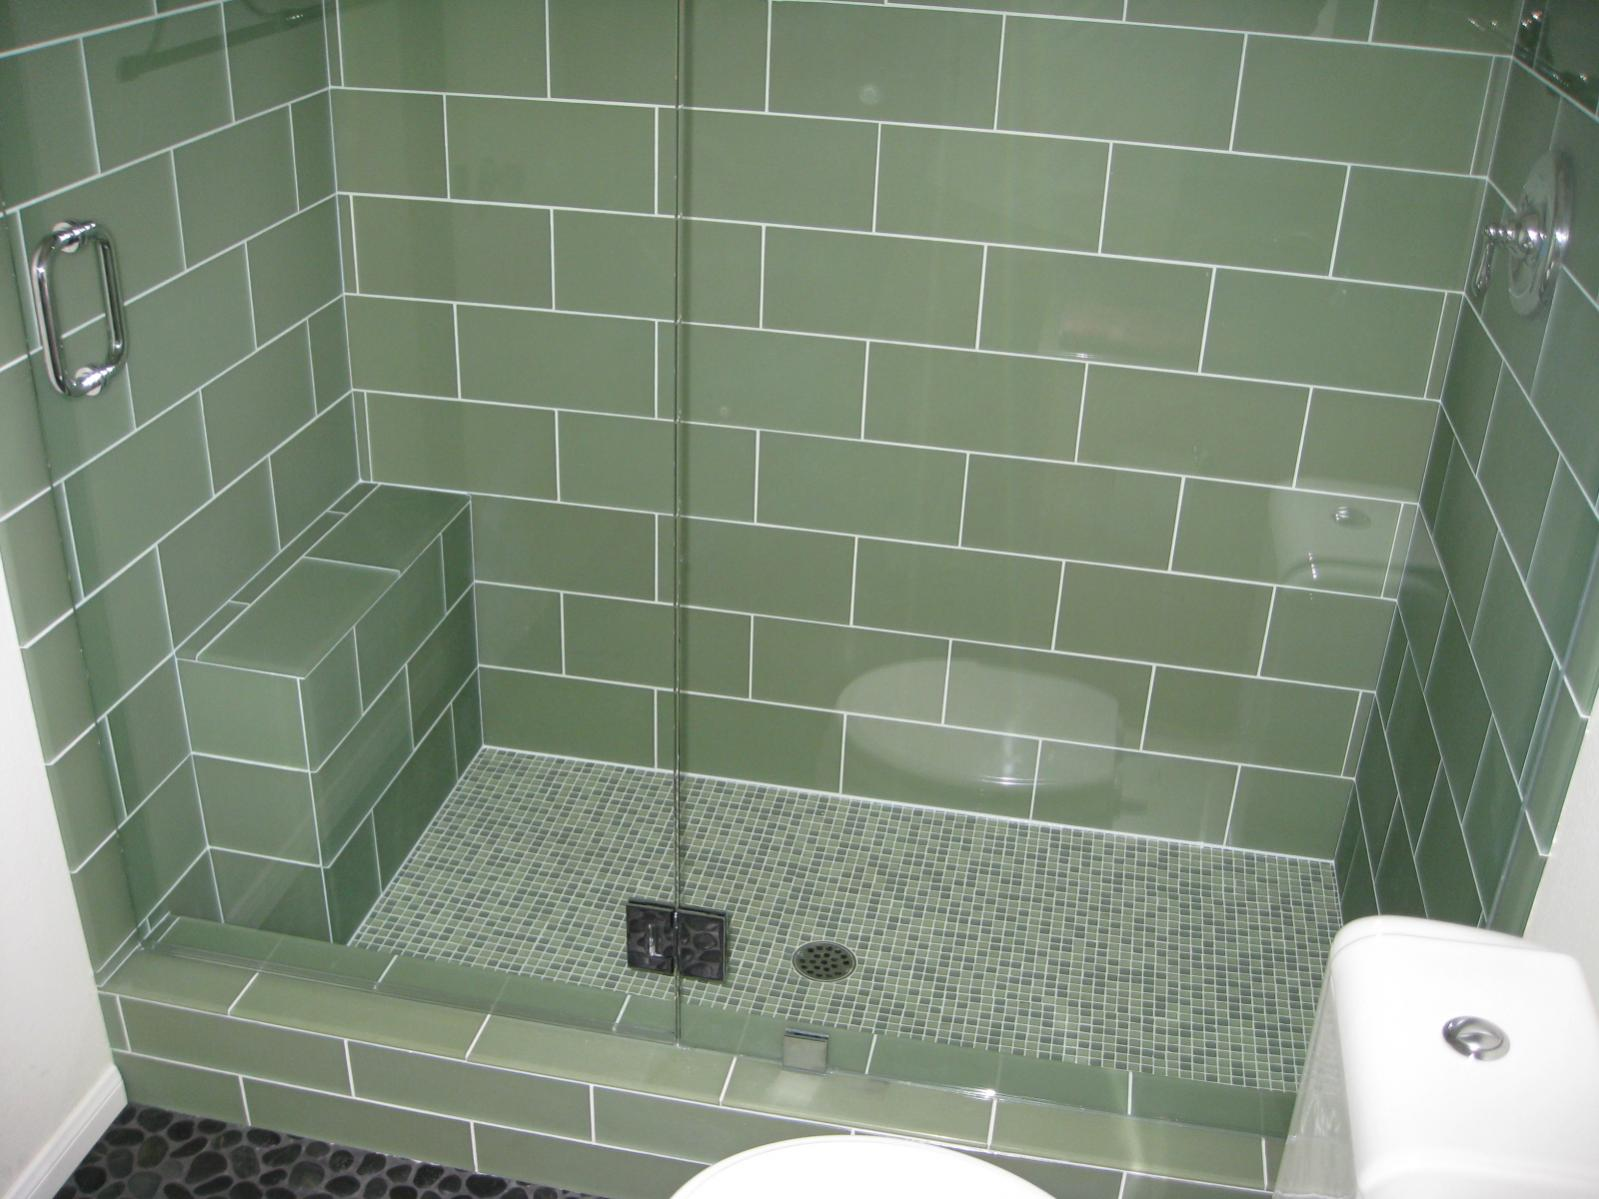 40 vintage green bathroom tile ideas and pictures interior green themed bathroom design of small bathroom dailygadgetfo Choice Image